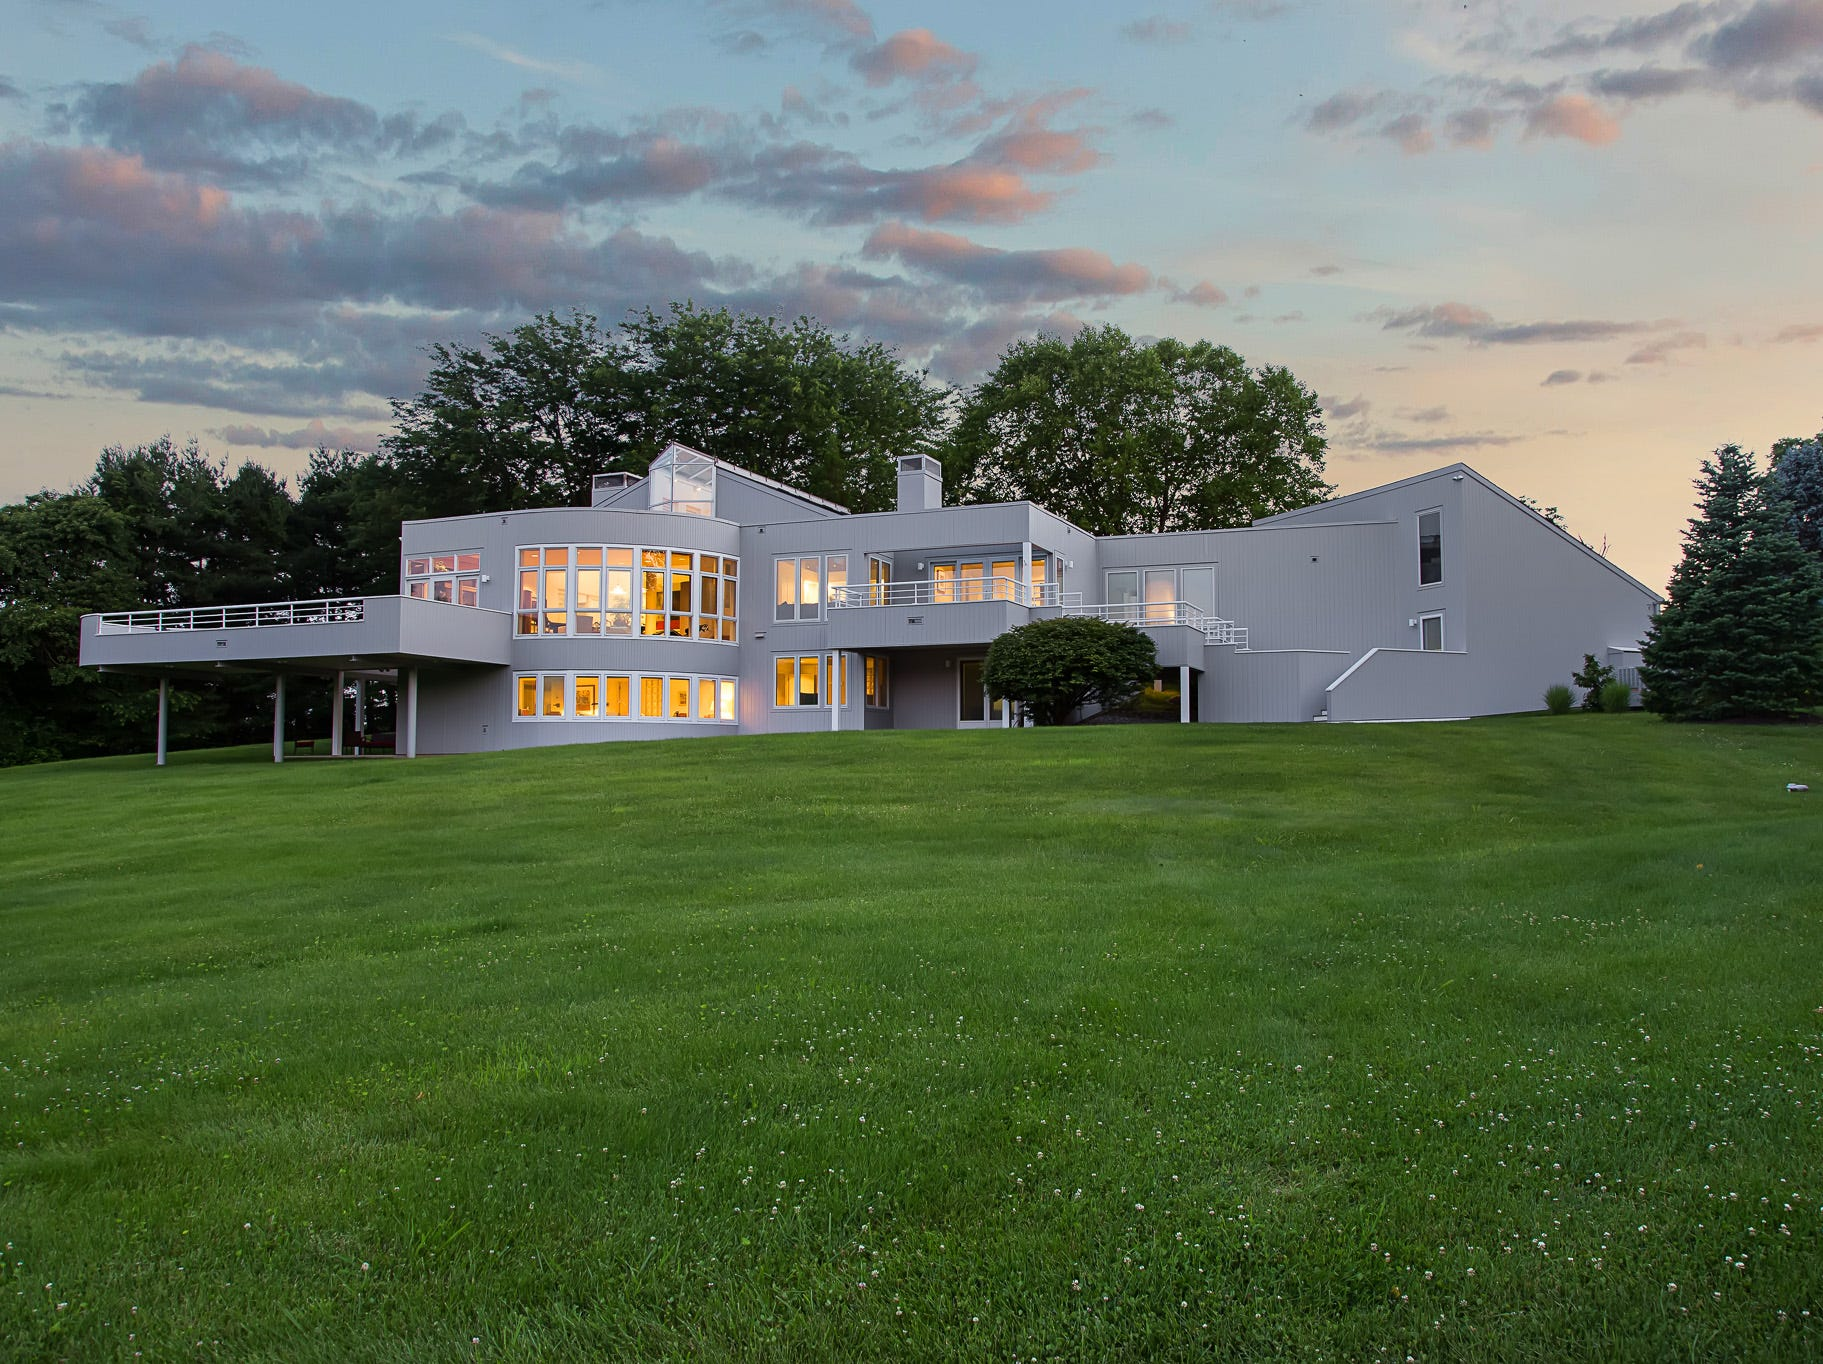 This contemporary home at 3611 Centerville Road in Greenville was designed by architect Buck Simpers and is situated on 6.1 acres.